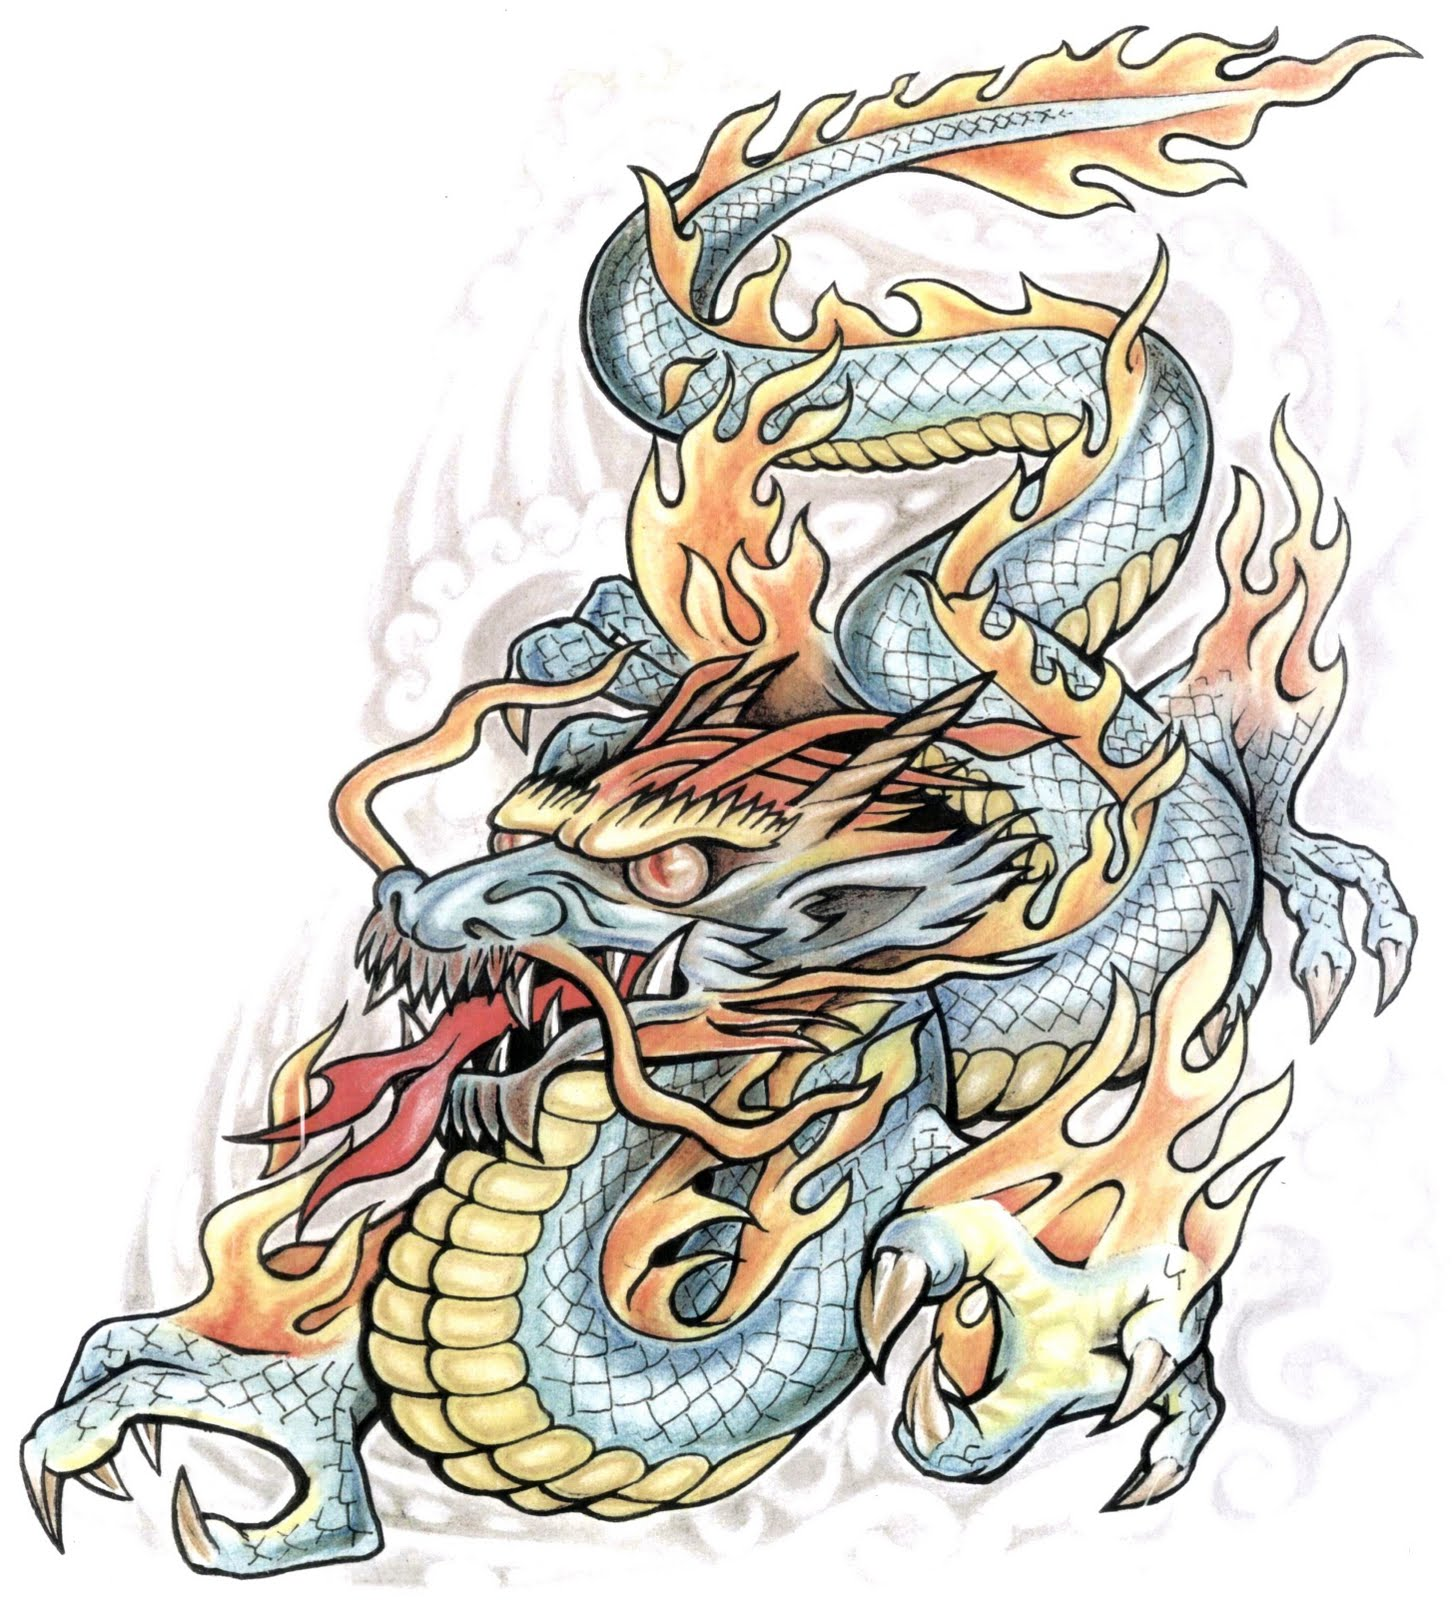 Men tribals tattoos dragon tattoo popular choice for many styles shapes